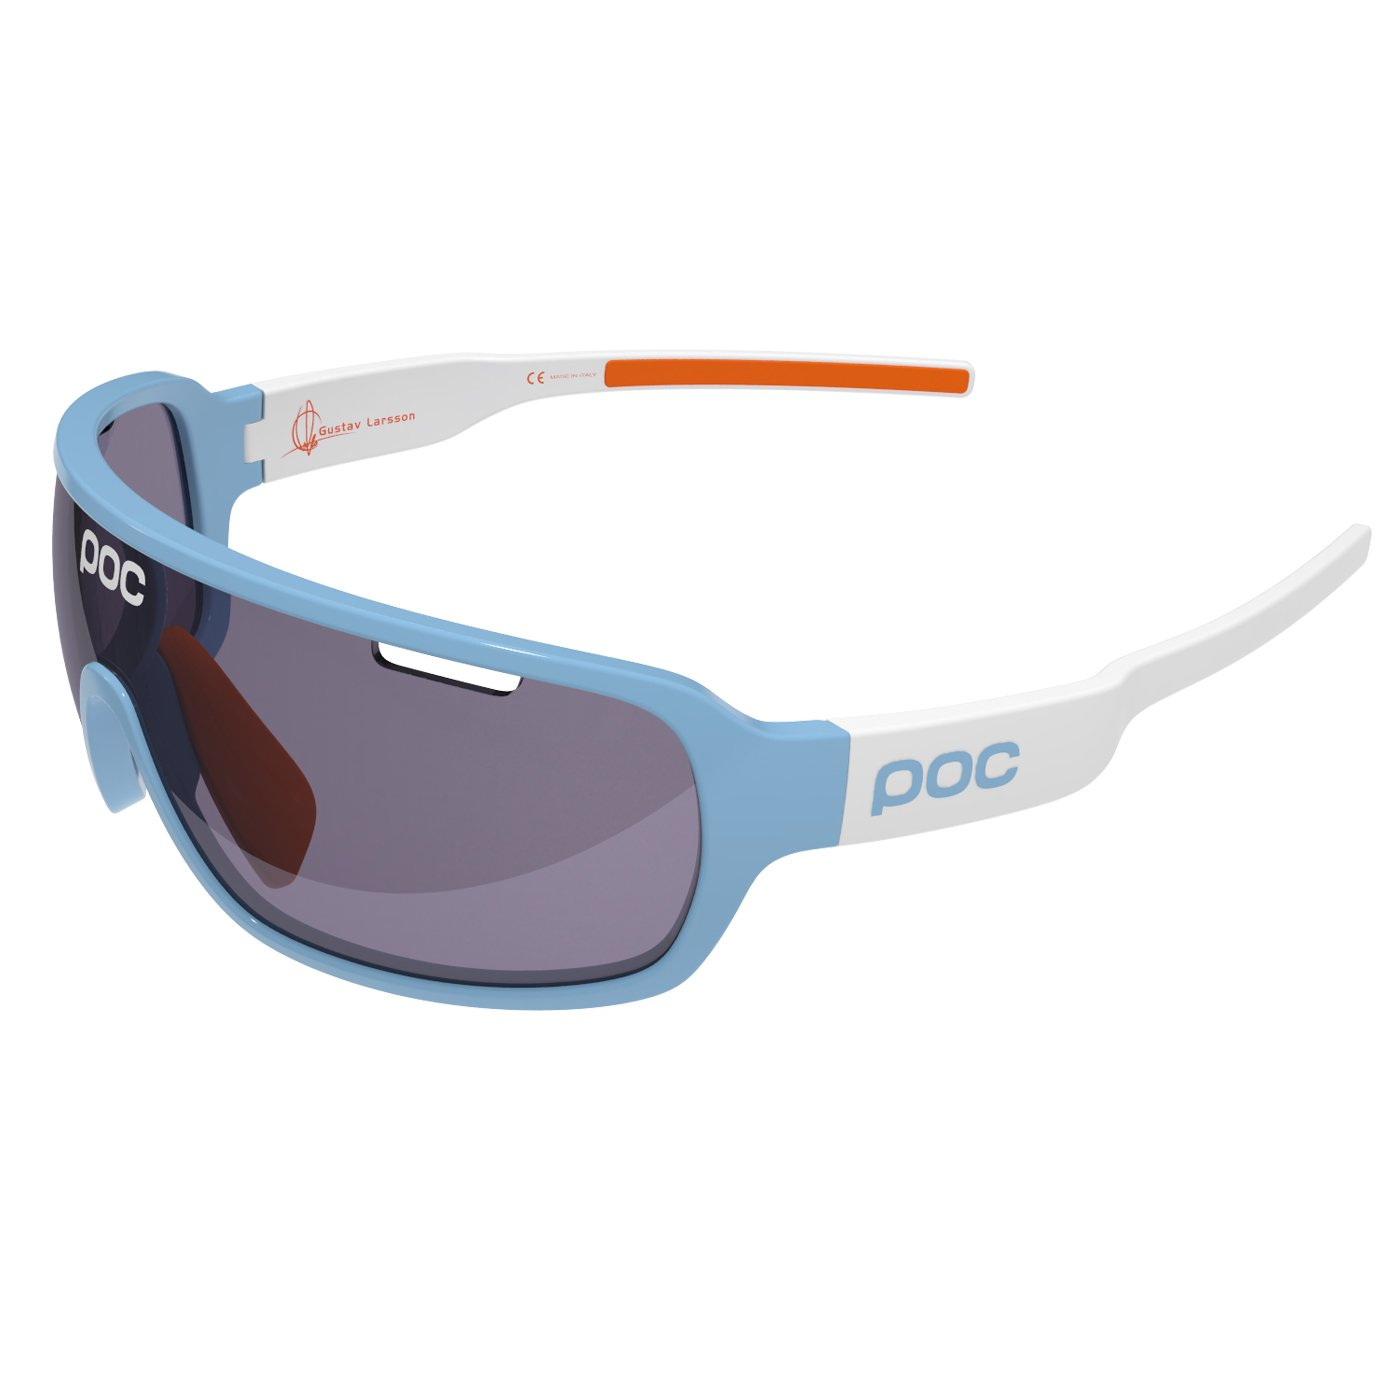 POC Crave Sunglasses - Sonnenbrillen - Performance Hydrogen White One Size t452X